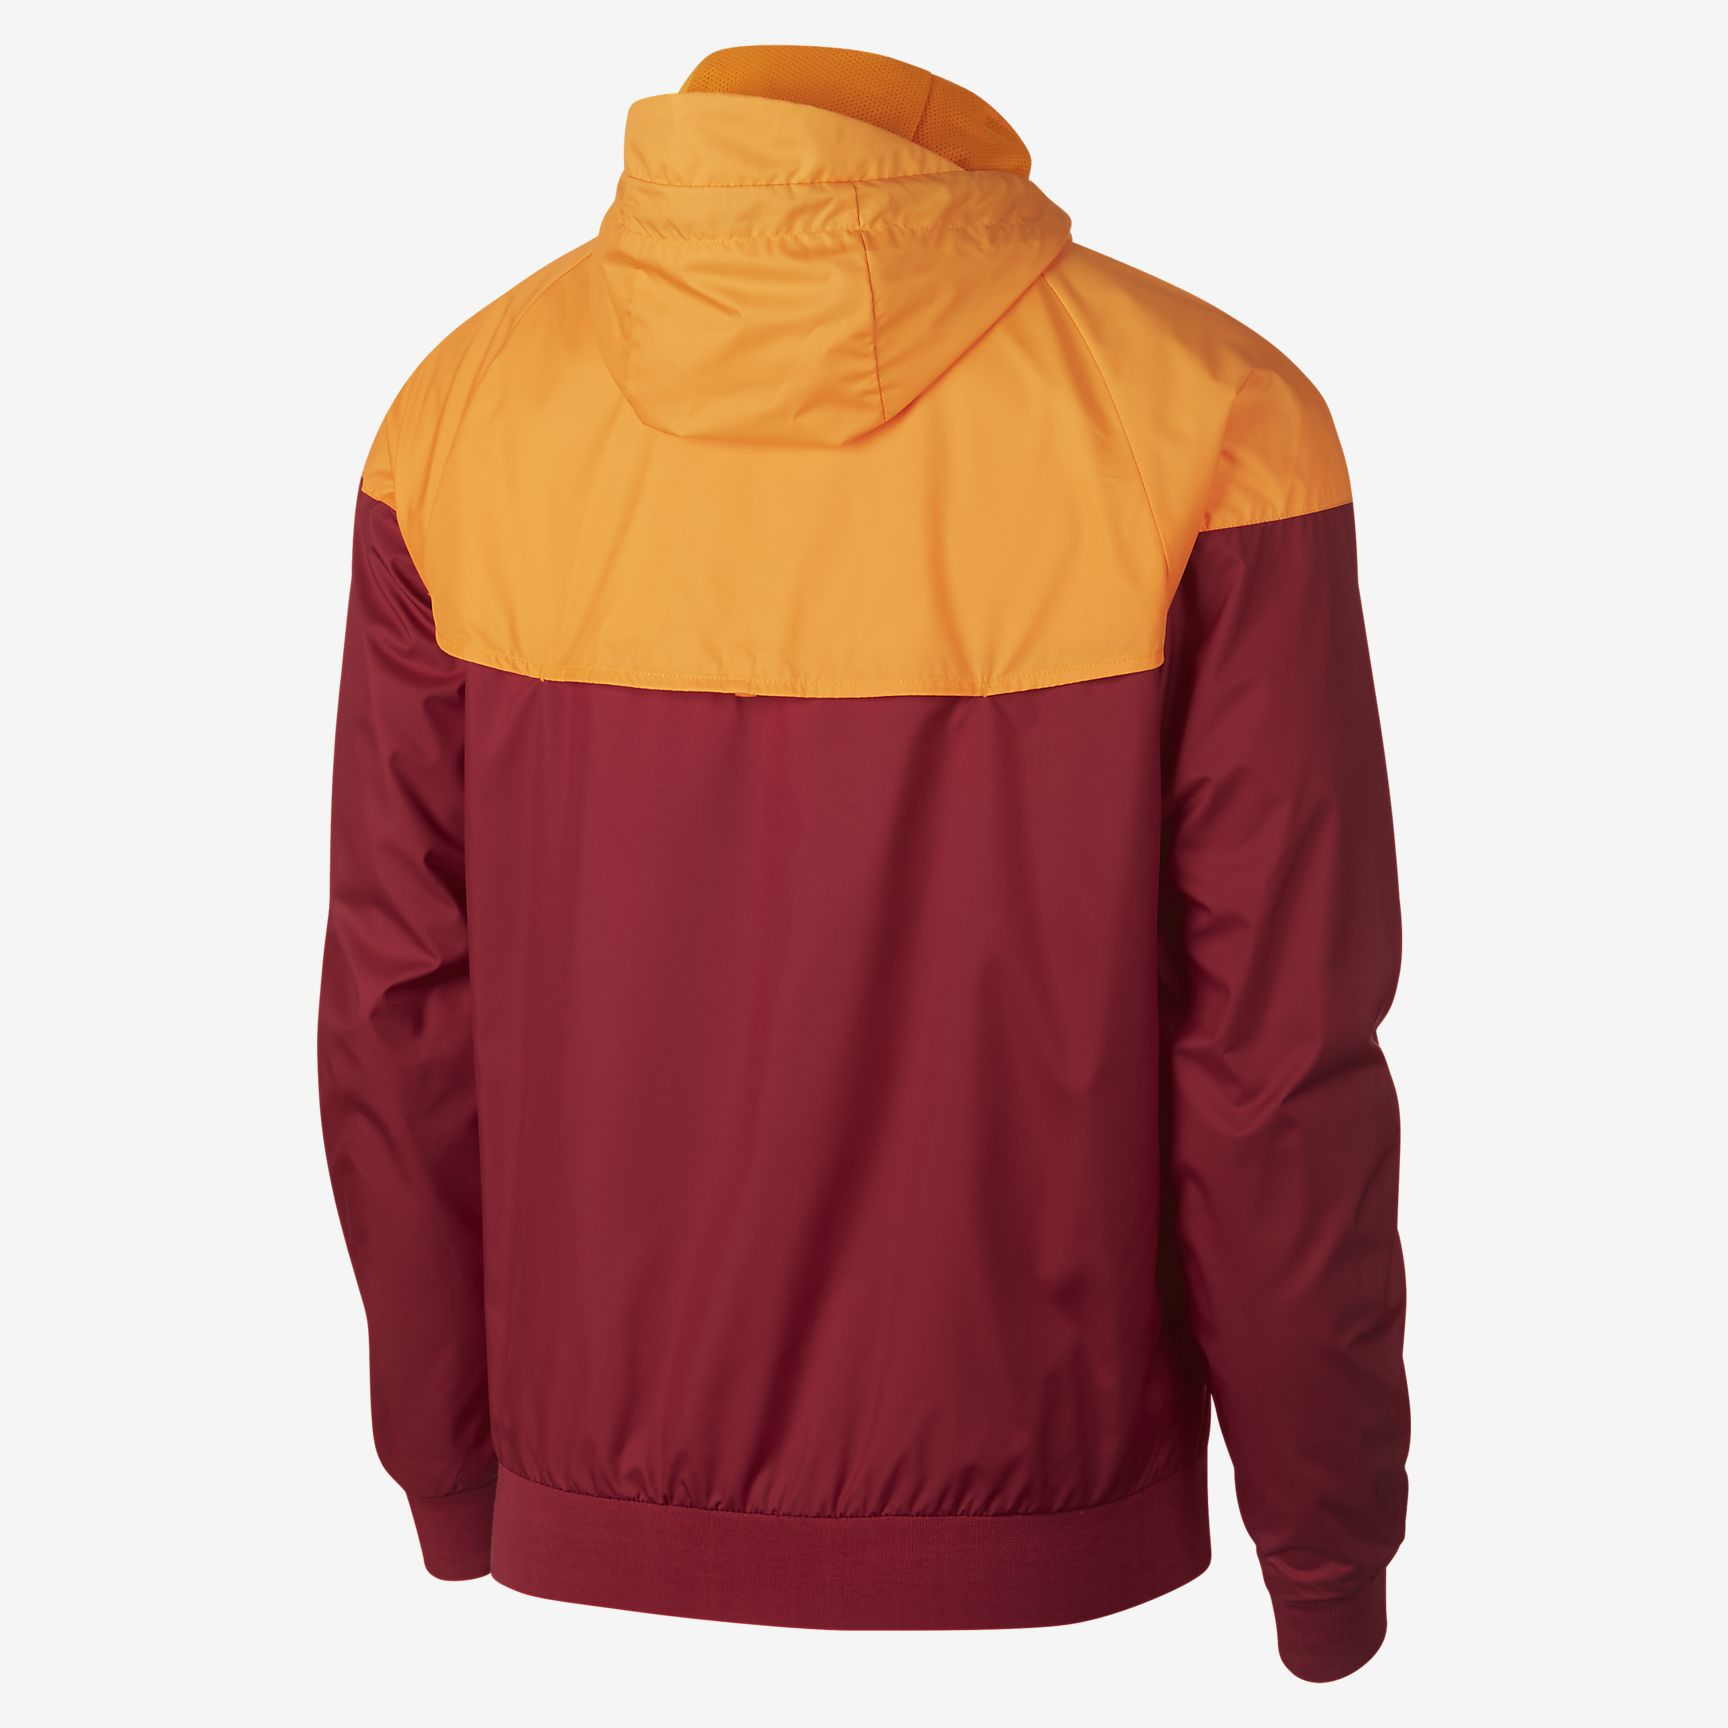 https://c.static-nike.com/a/images/t_PDP_1728_v1/f_auto/qiyq9kbaotllvcoxchth/galatasaray-sk-windrunner-jacket-PsgdZD.jpg